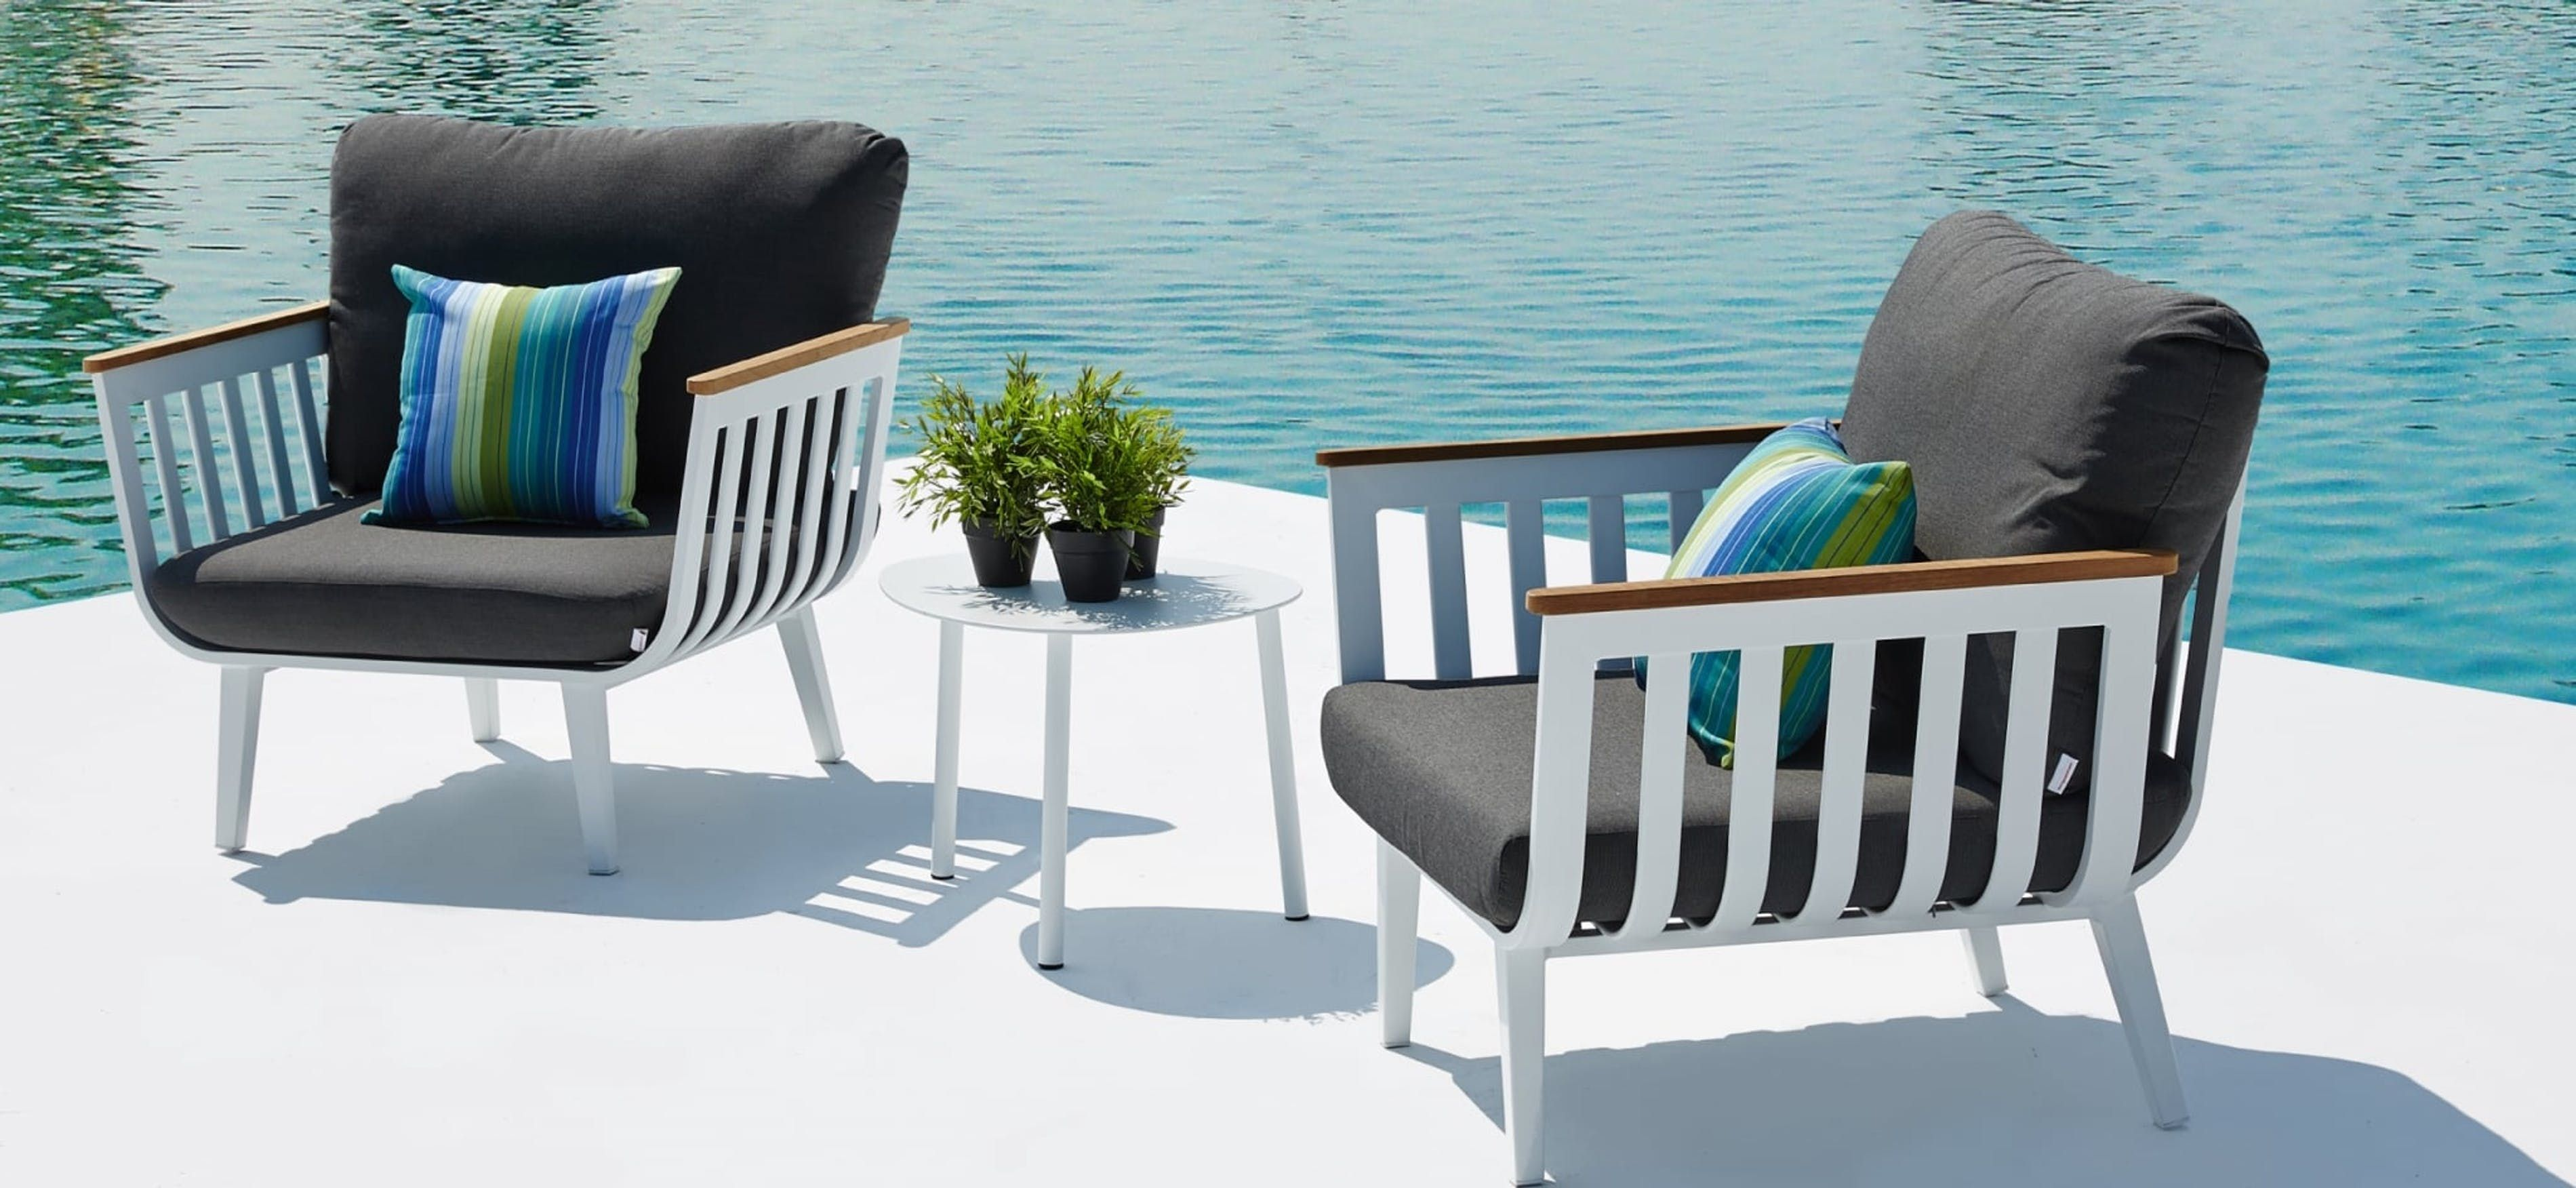 Sweden Outdoor Furniture Outdoor lounge furniture